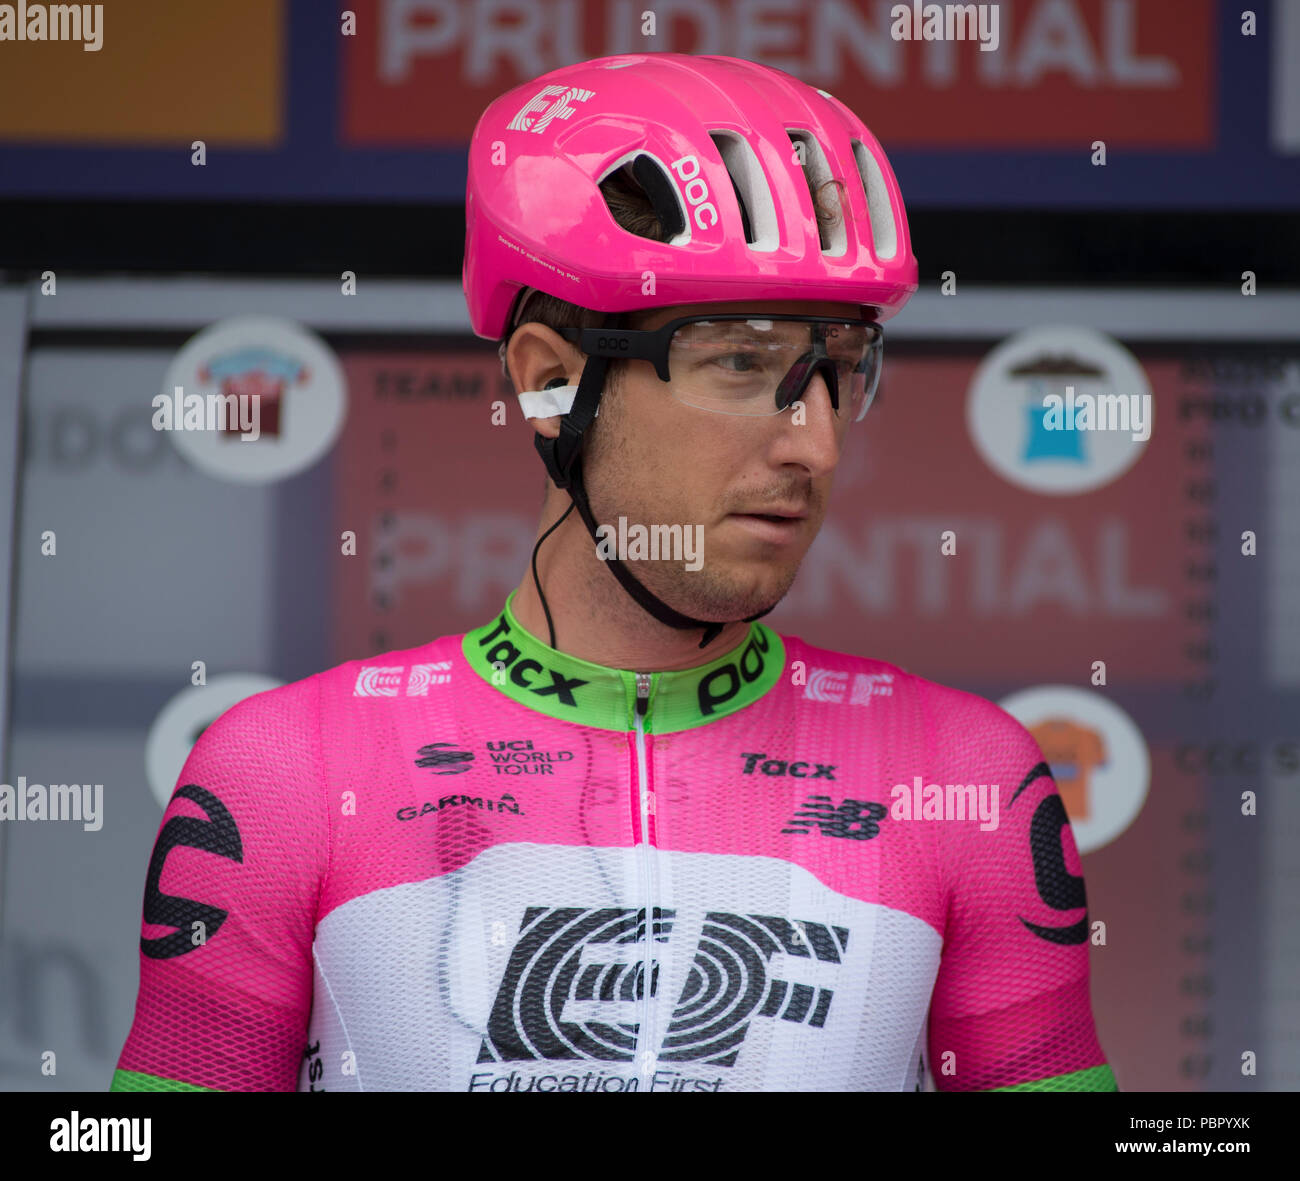 Ef Education First Stock Photos   Ef Education First Stock Images ... 84a1aebe5